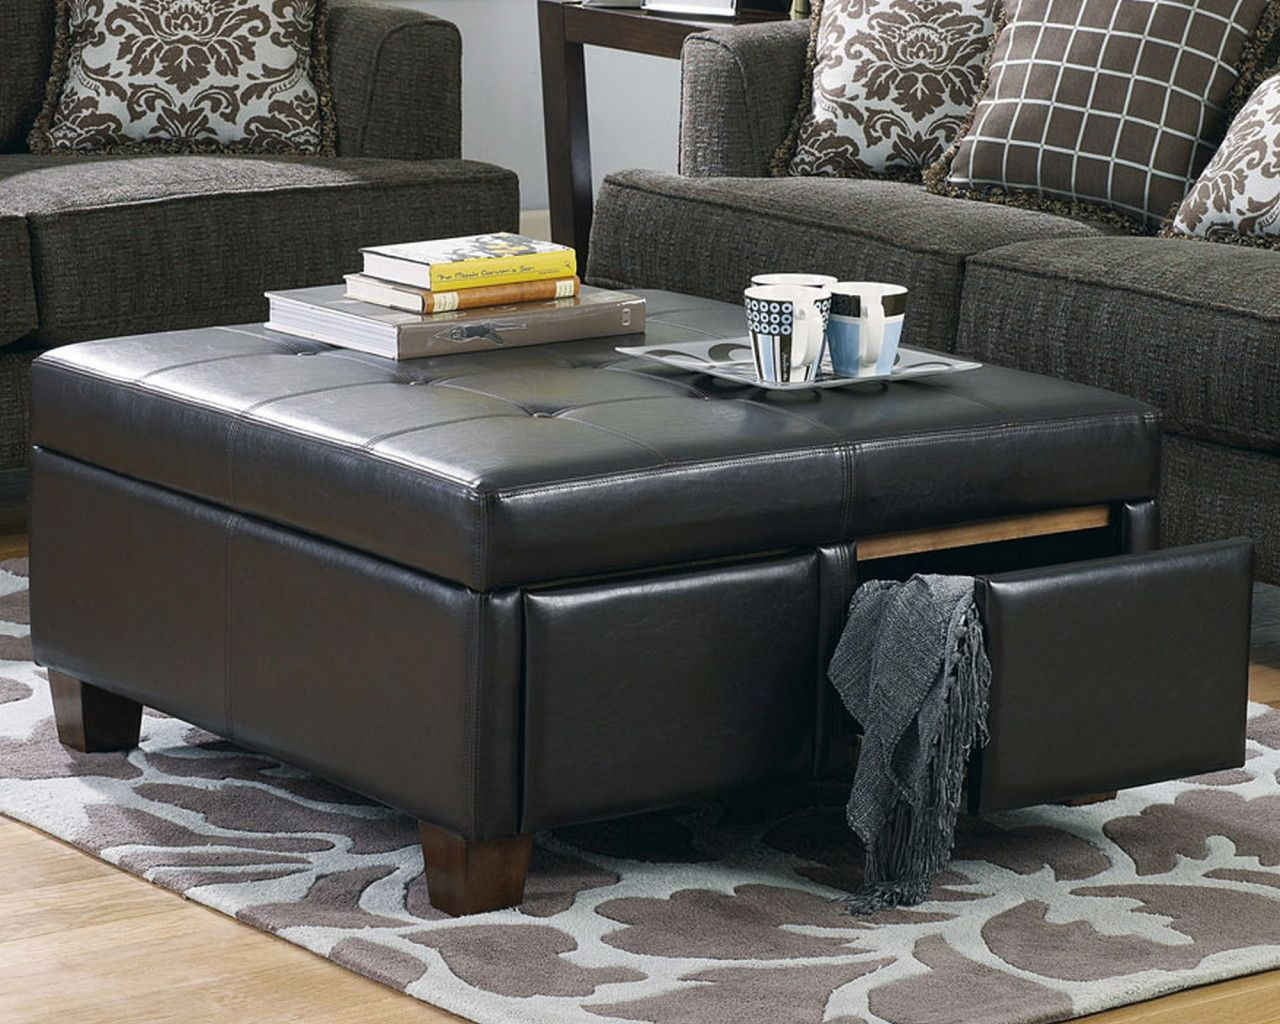 50 Elegant Round Leather Coffee Table Ottoman 2020 Upholstered